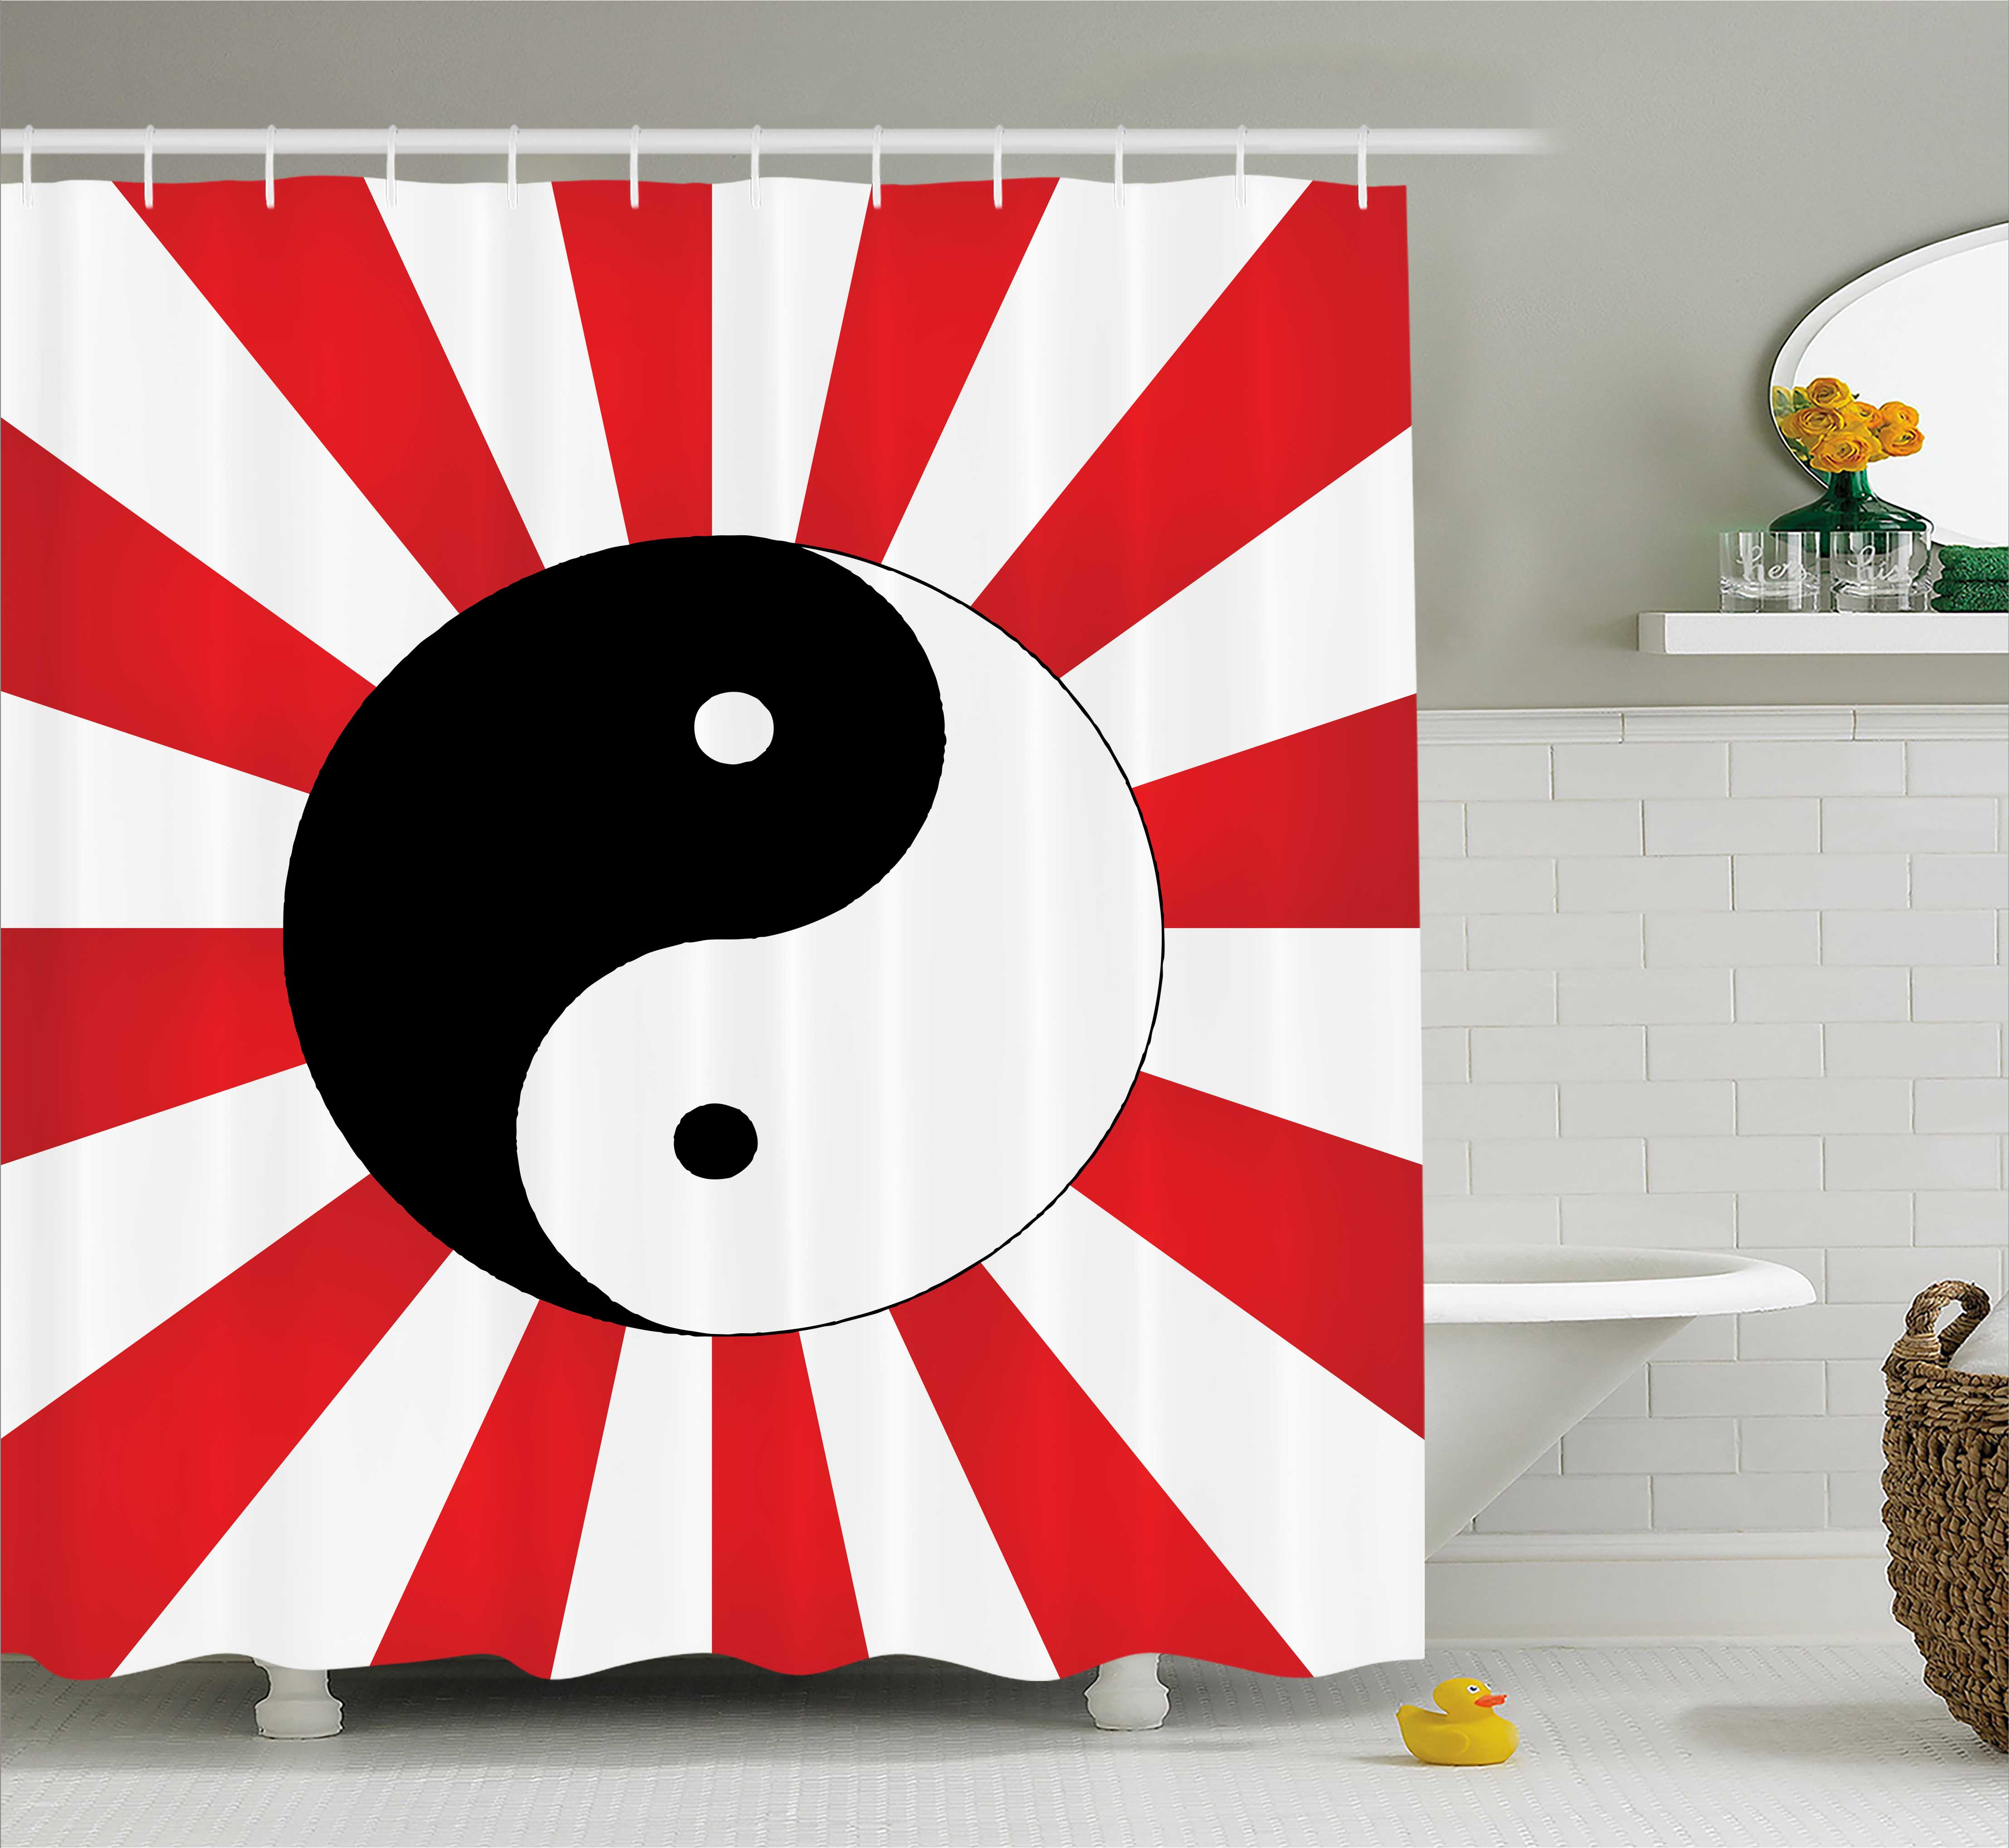 Ying Yang Decor Shower Curtain, Traditional Asian on Chinese Rising Sun Sunburst Pattern Art Print, Fabric Bathroom Set with Hooks, 69W X 70L Inches, Black White Red, by Ambesonne